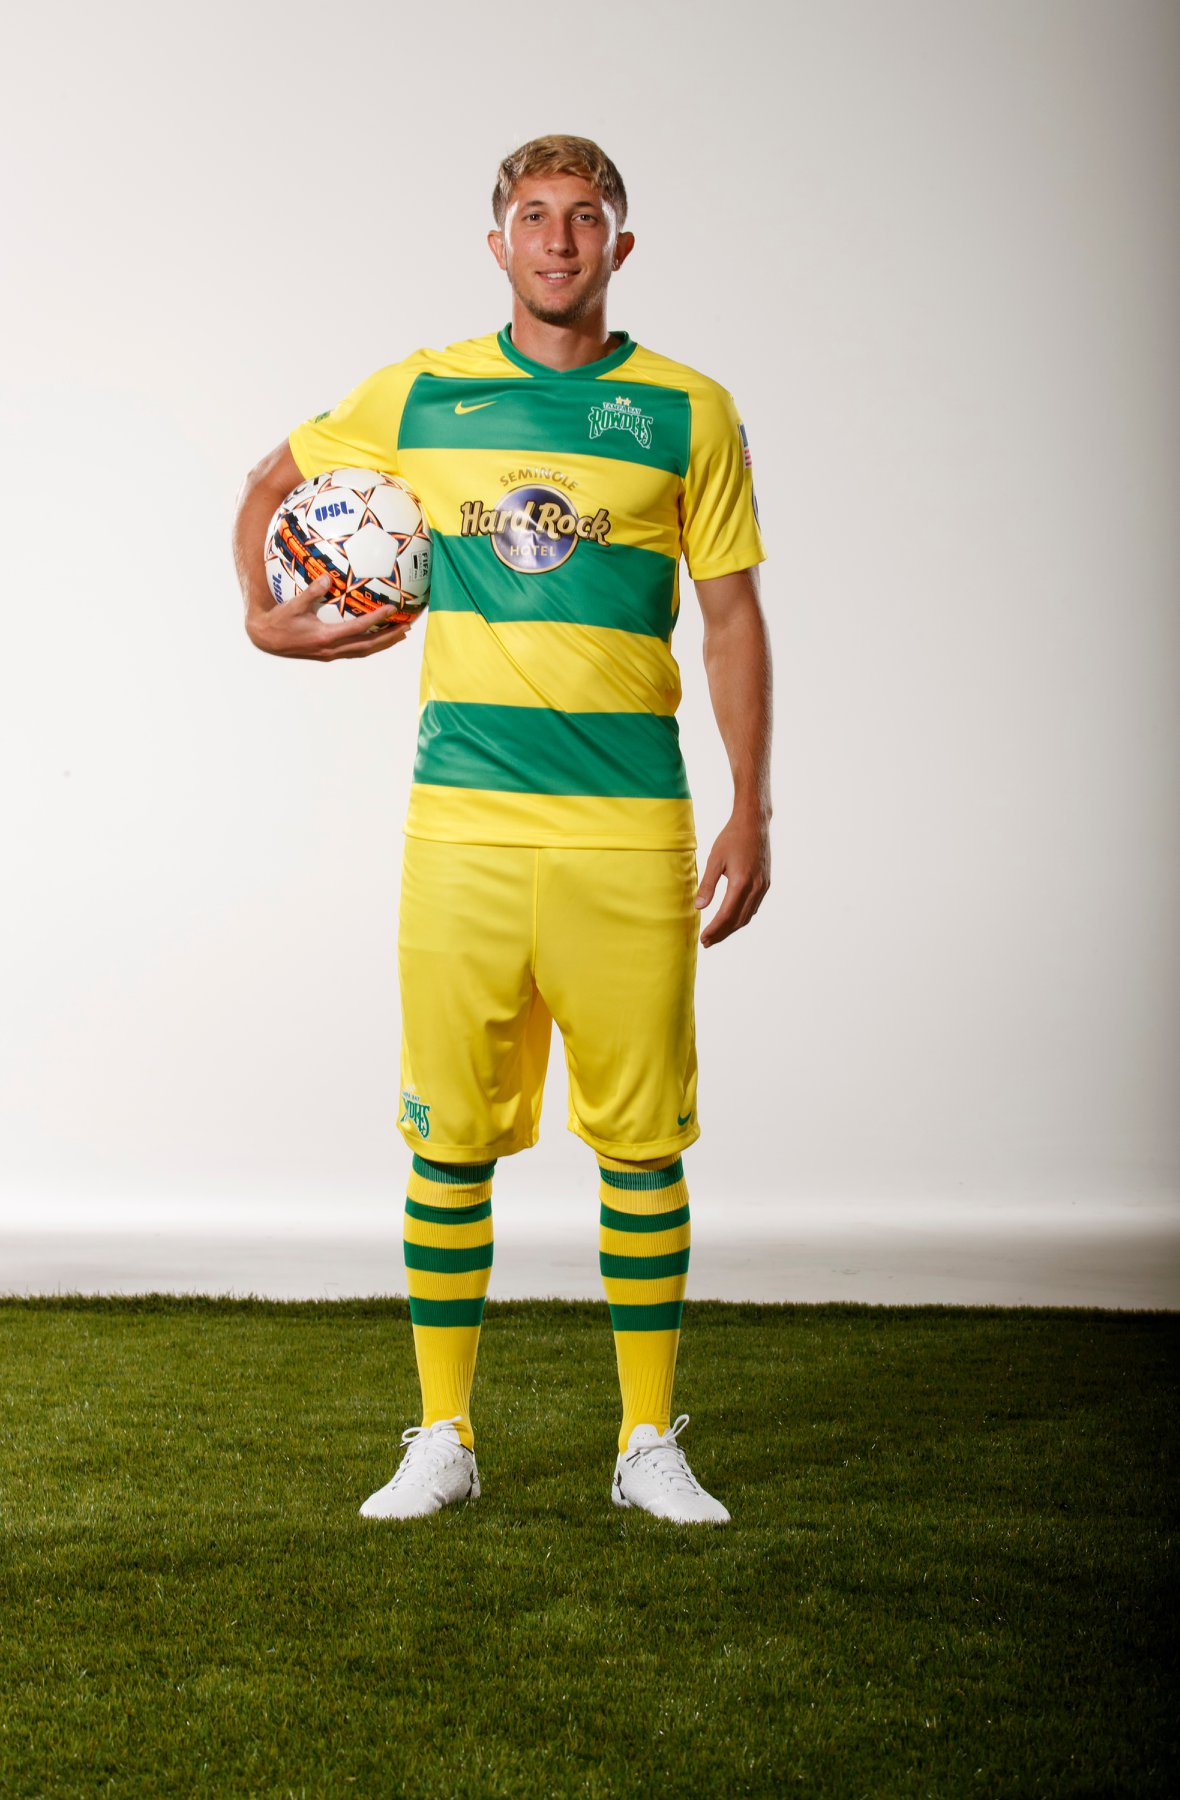 tampa bay rowdies 2018 nike away kit 17 18 kits football shirt blog tampa bay rowdies 2018 nike away kit 17 18 kits football shirt blog